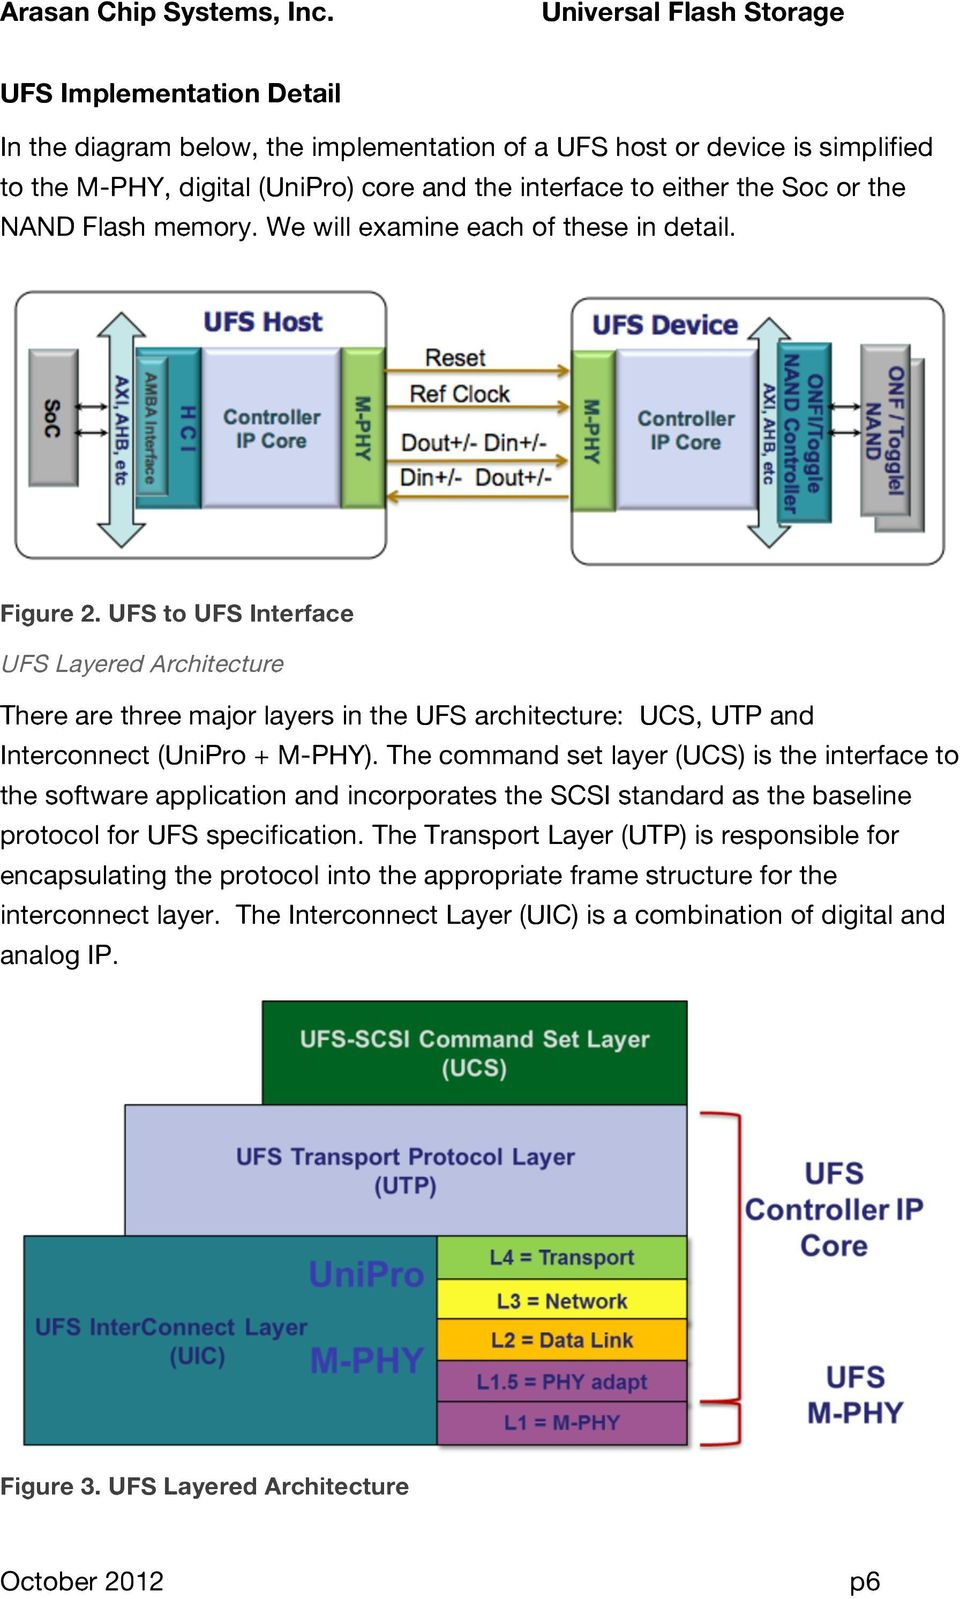 UFS to UFS Interface UFS Layered Architecture There are three major layers in the UFS architecture: UCS, UTP and Interconnect (UniPro + M-PHY).